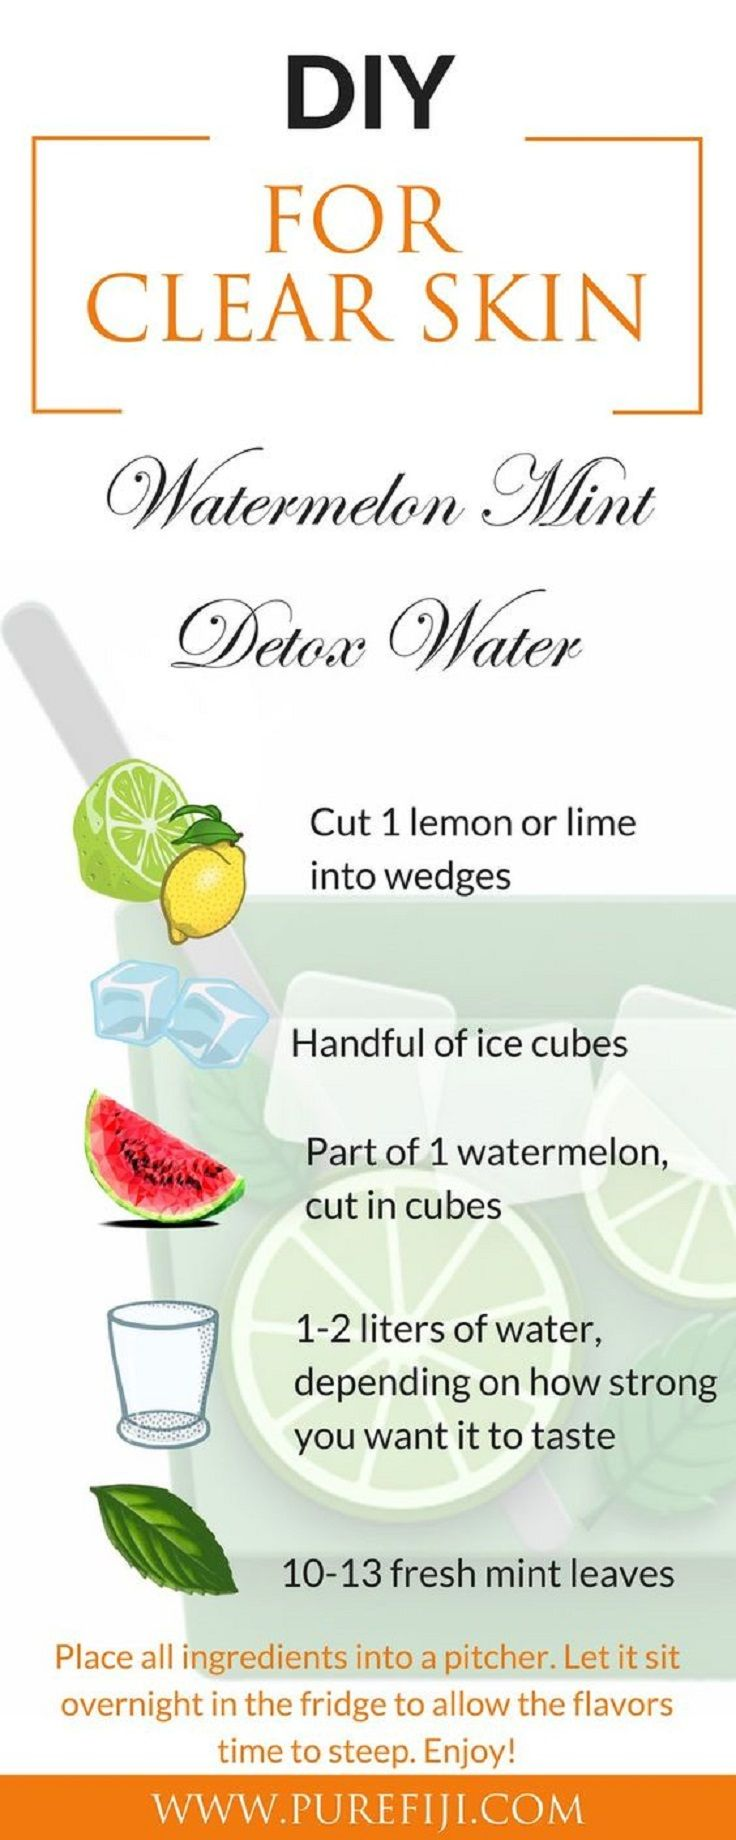 Detox Water For Healthy And Glowing Skin Summer Skin Care Routine 11 Best Diy Home Remedies Tips Summer Skincare Routine Detox Water Healthy Detox Cleanse